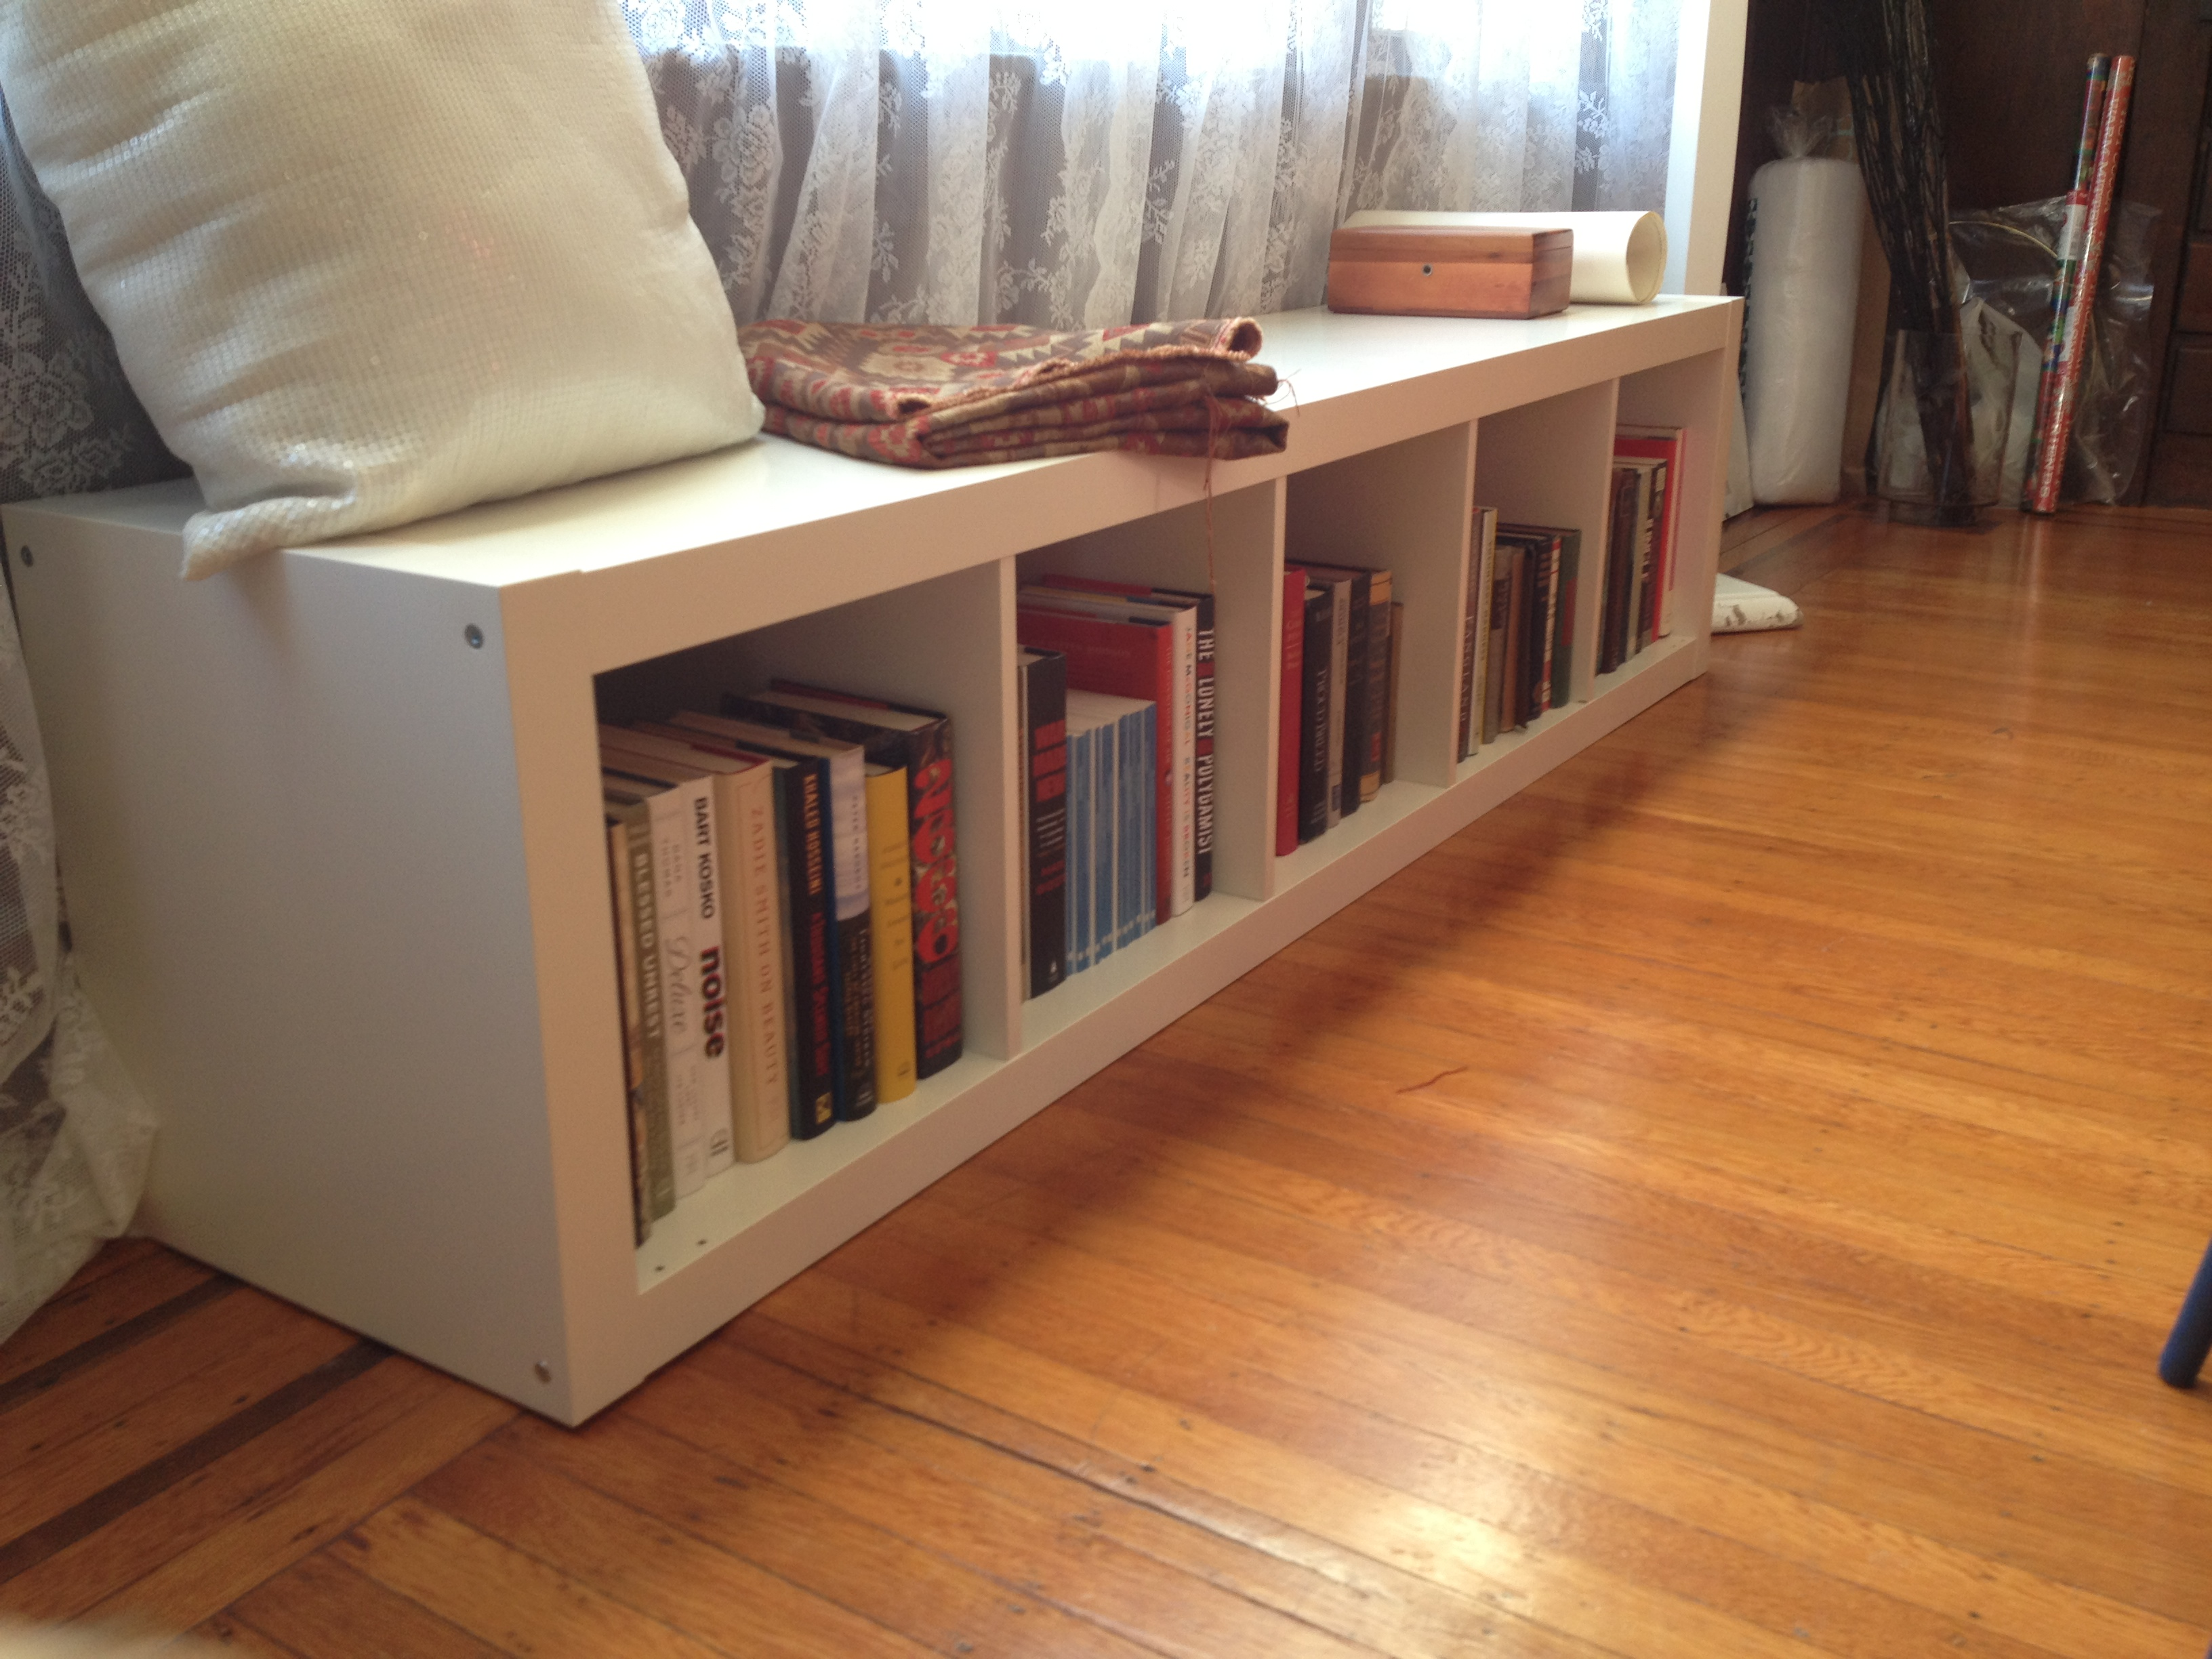 Ikea Expedit Bookcase in cream filled with books on wooden floor plus white cushion and white curtains